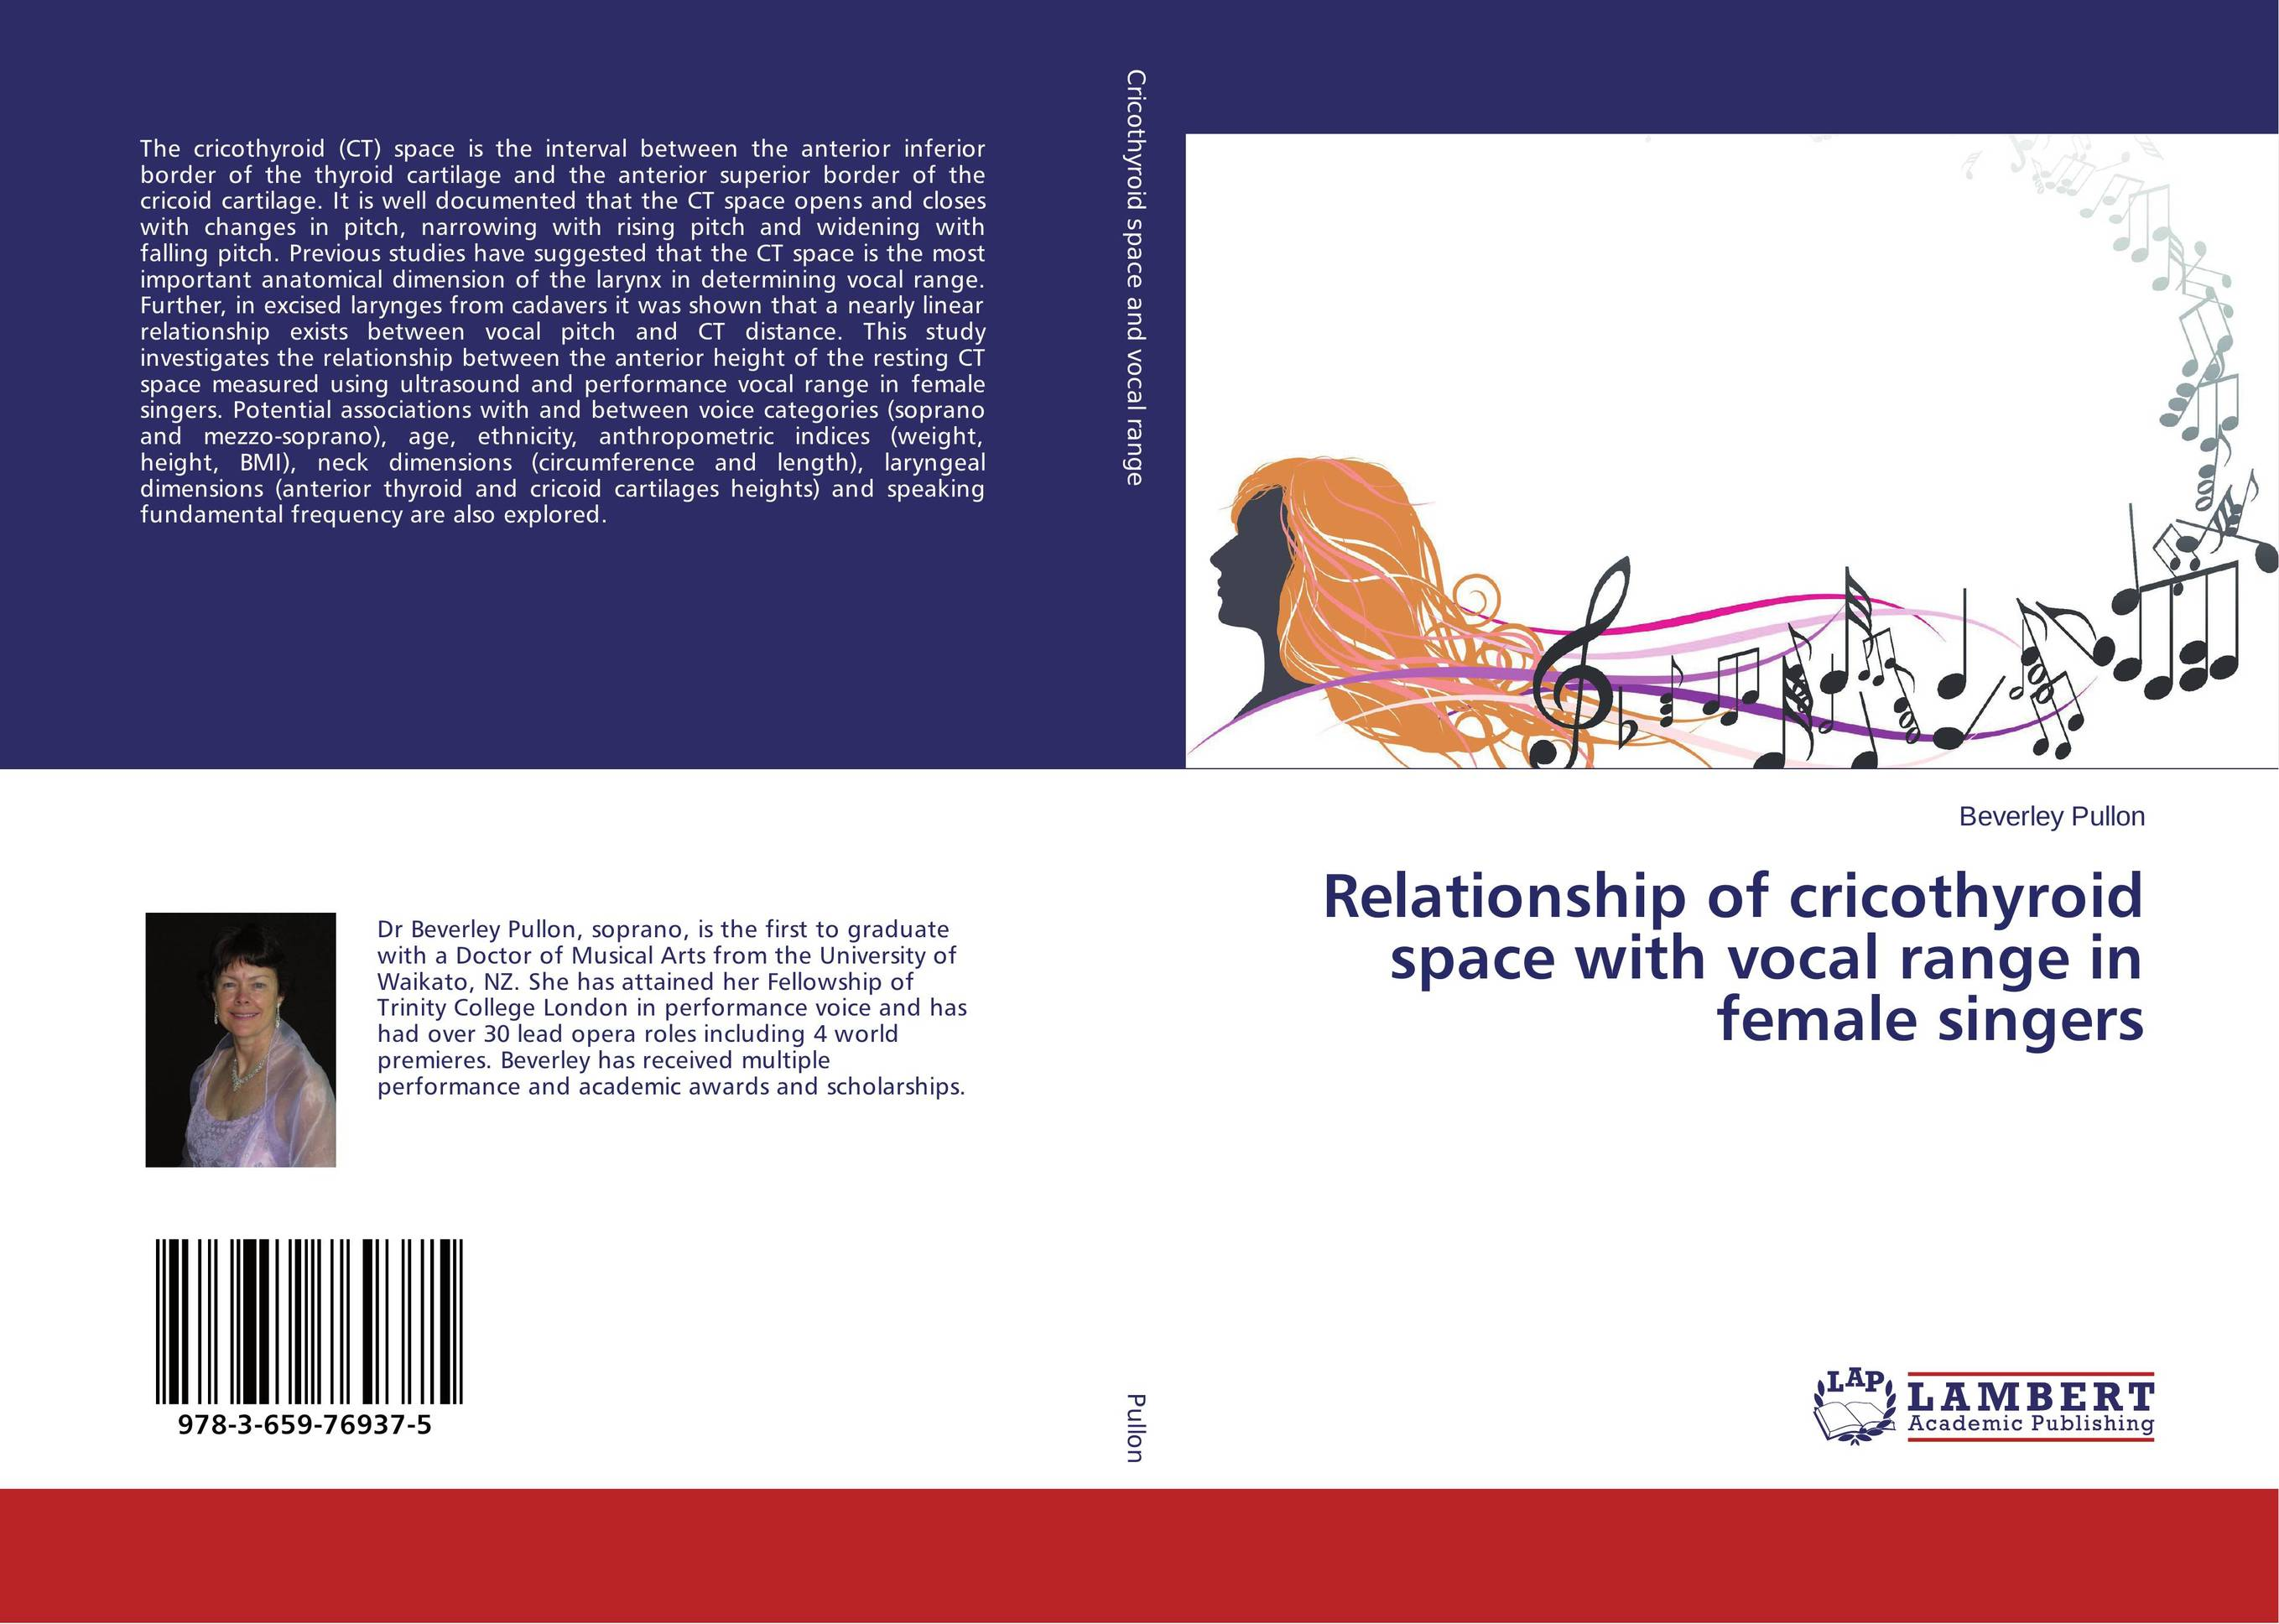 Relationship of cricothyroid space with vocal range in female singers the space between us